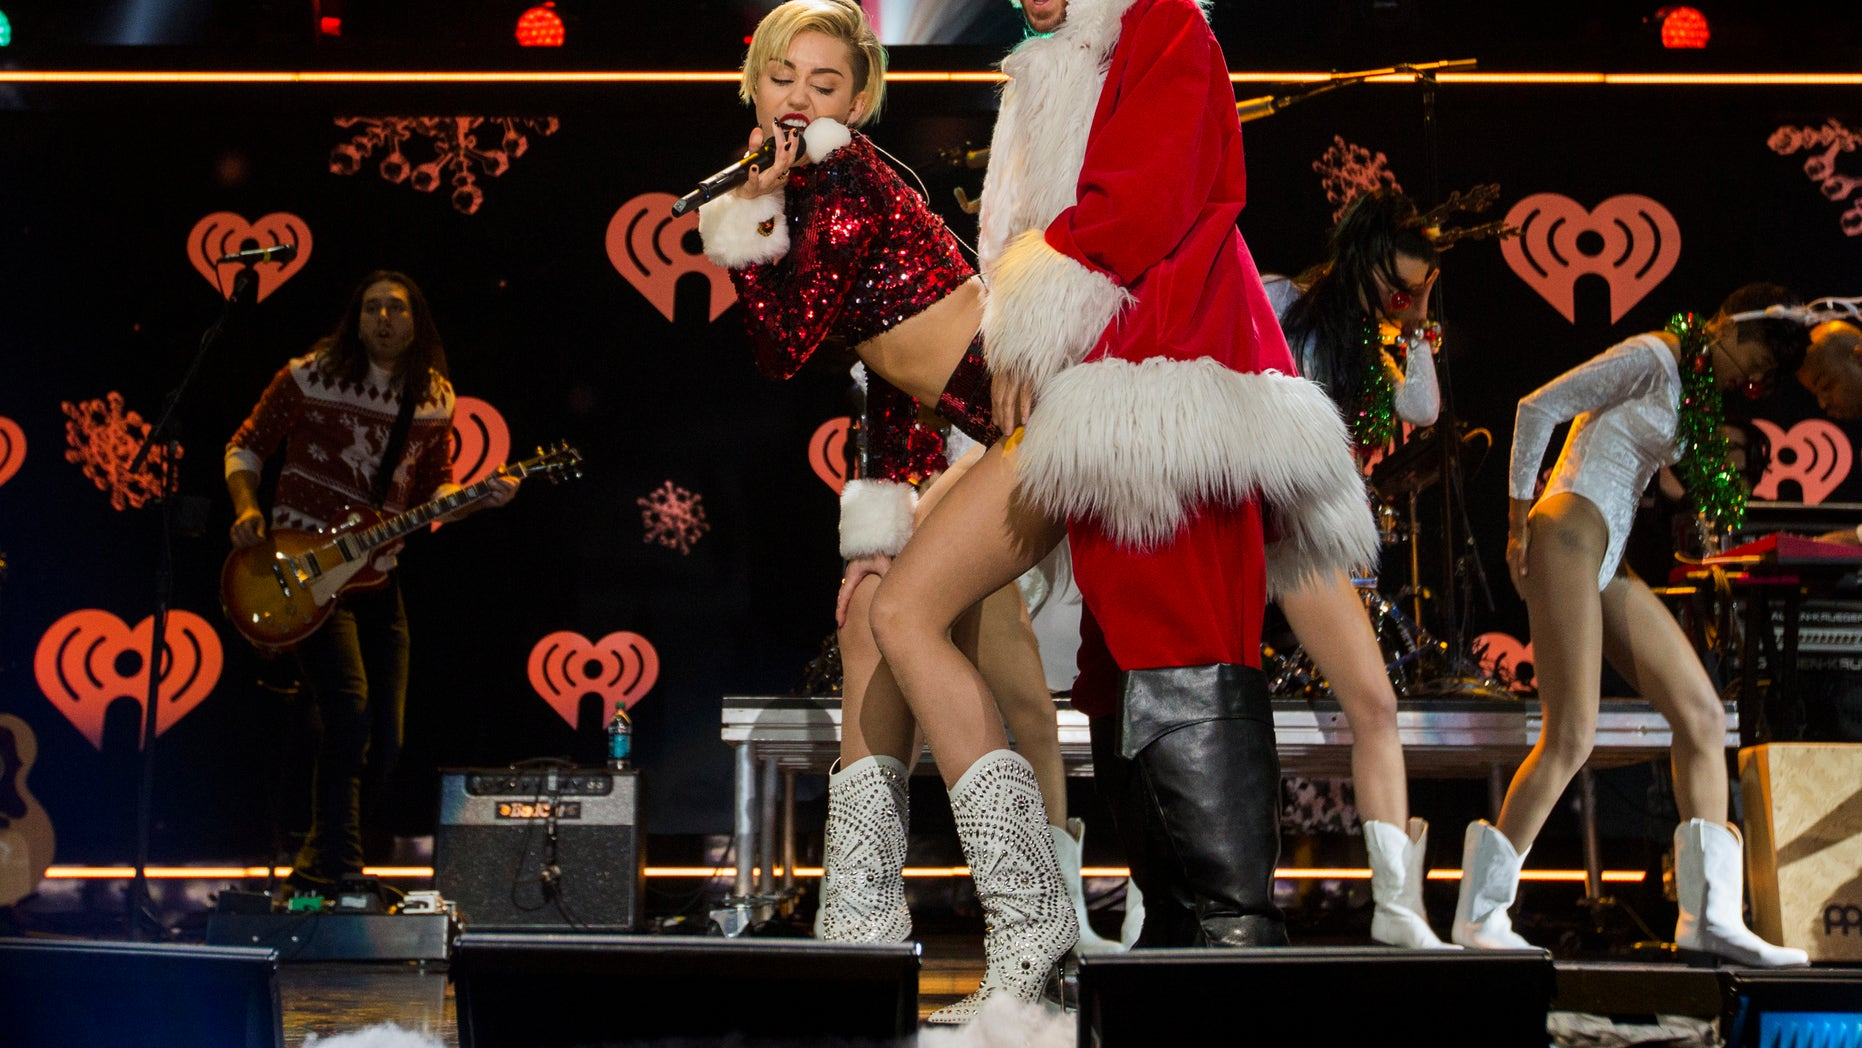 """December 13, 2013. Miley Cyrus """"twerks"""" a performer dressed as Santa Claus as she performs during the 2013 Z100 Jingle Ball in New York."""